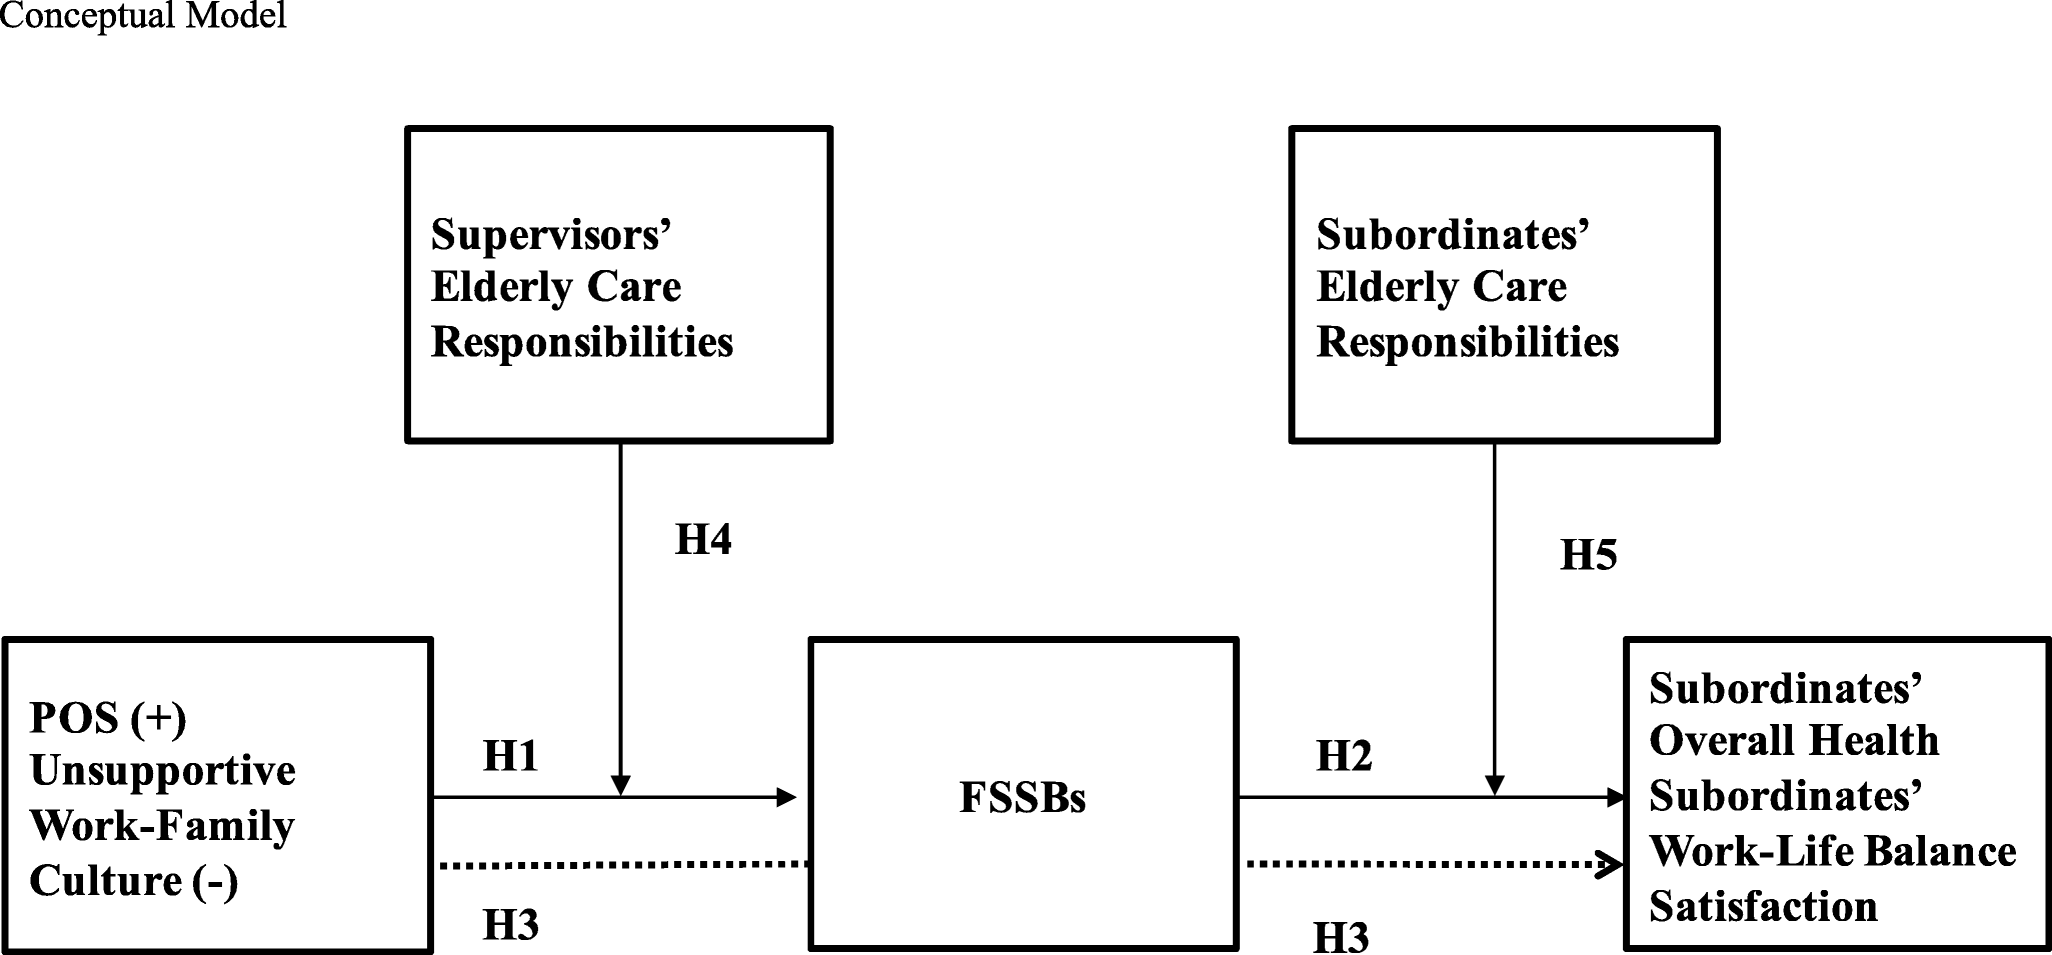 FSSBs and Elderly Care: Exploring the Role of Organizational